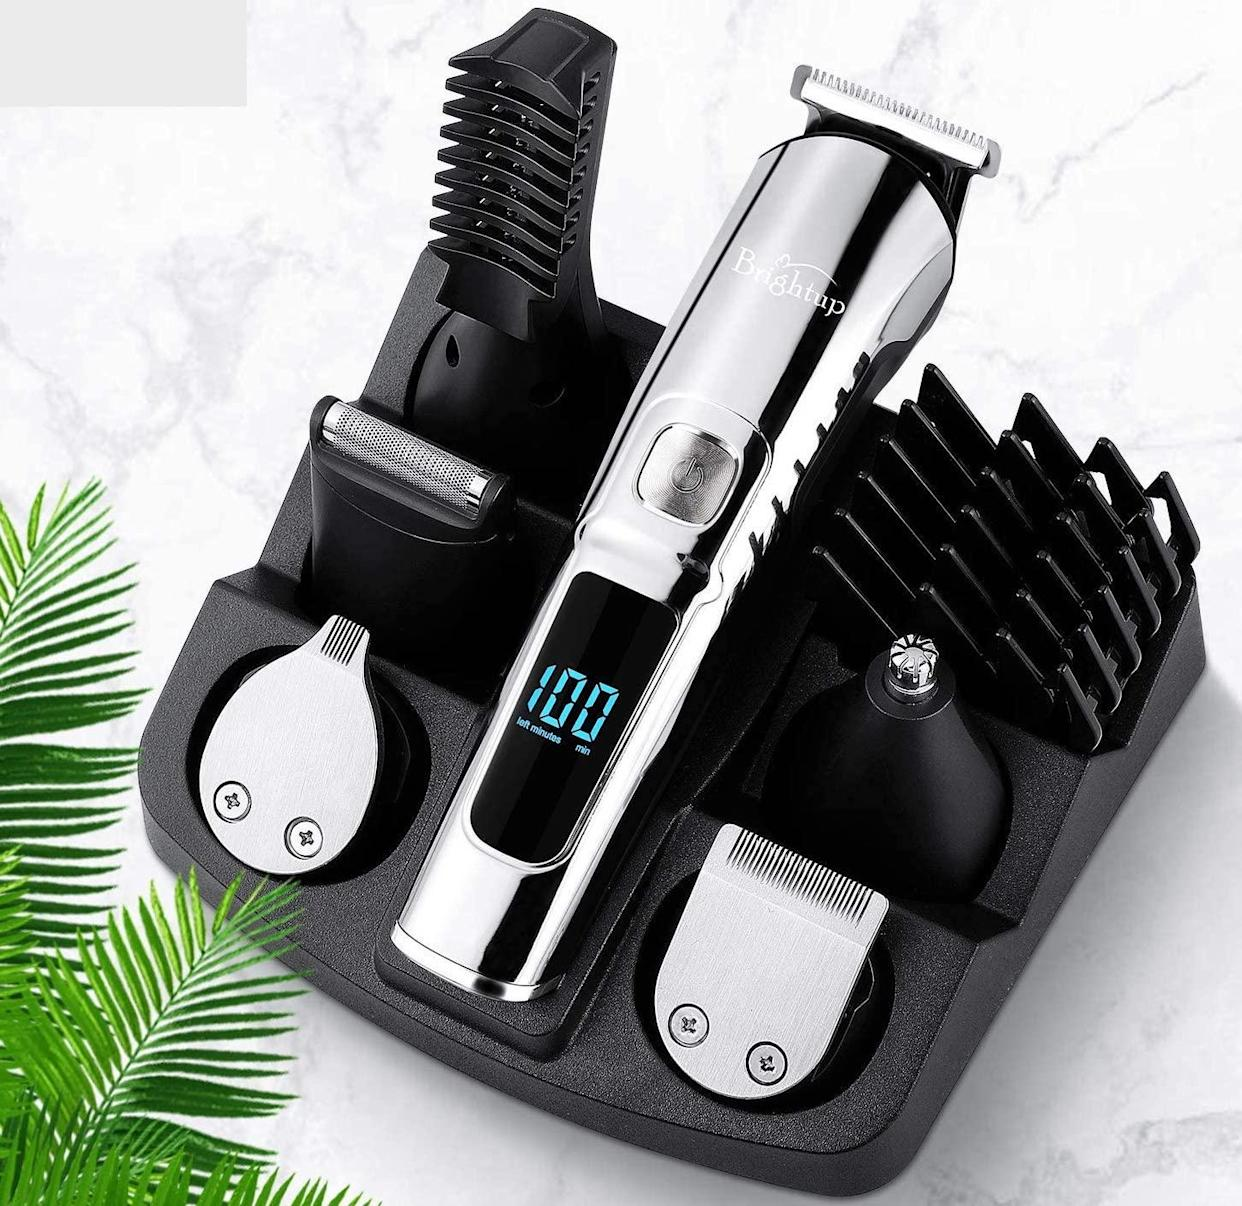 This clipper-trimmer combo has so many accessories to choose from. (Photo: Amazon)